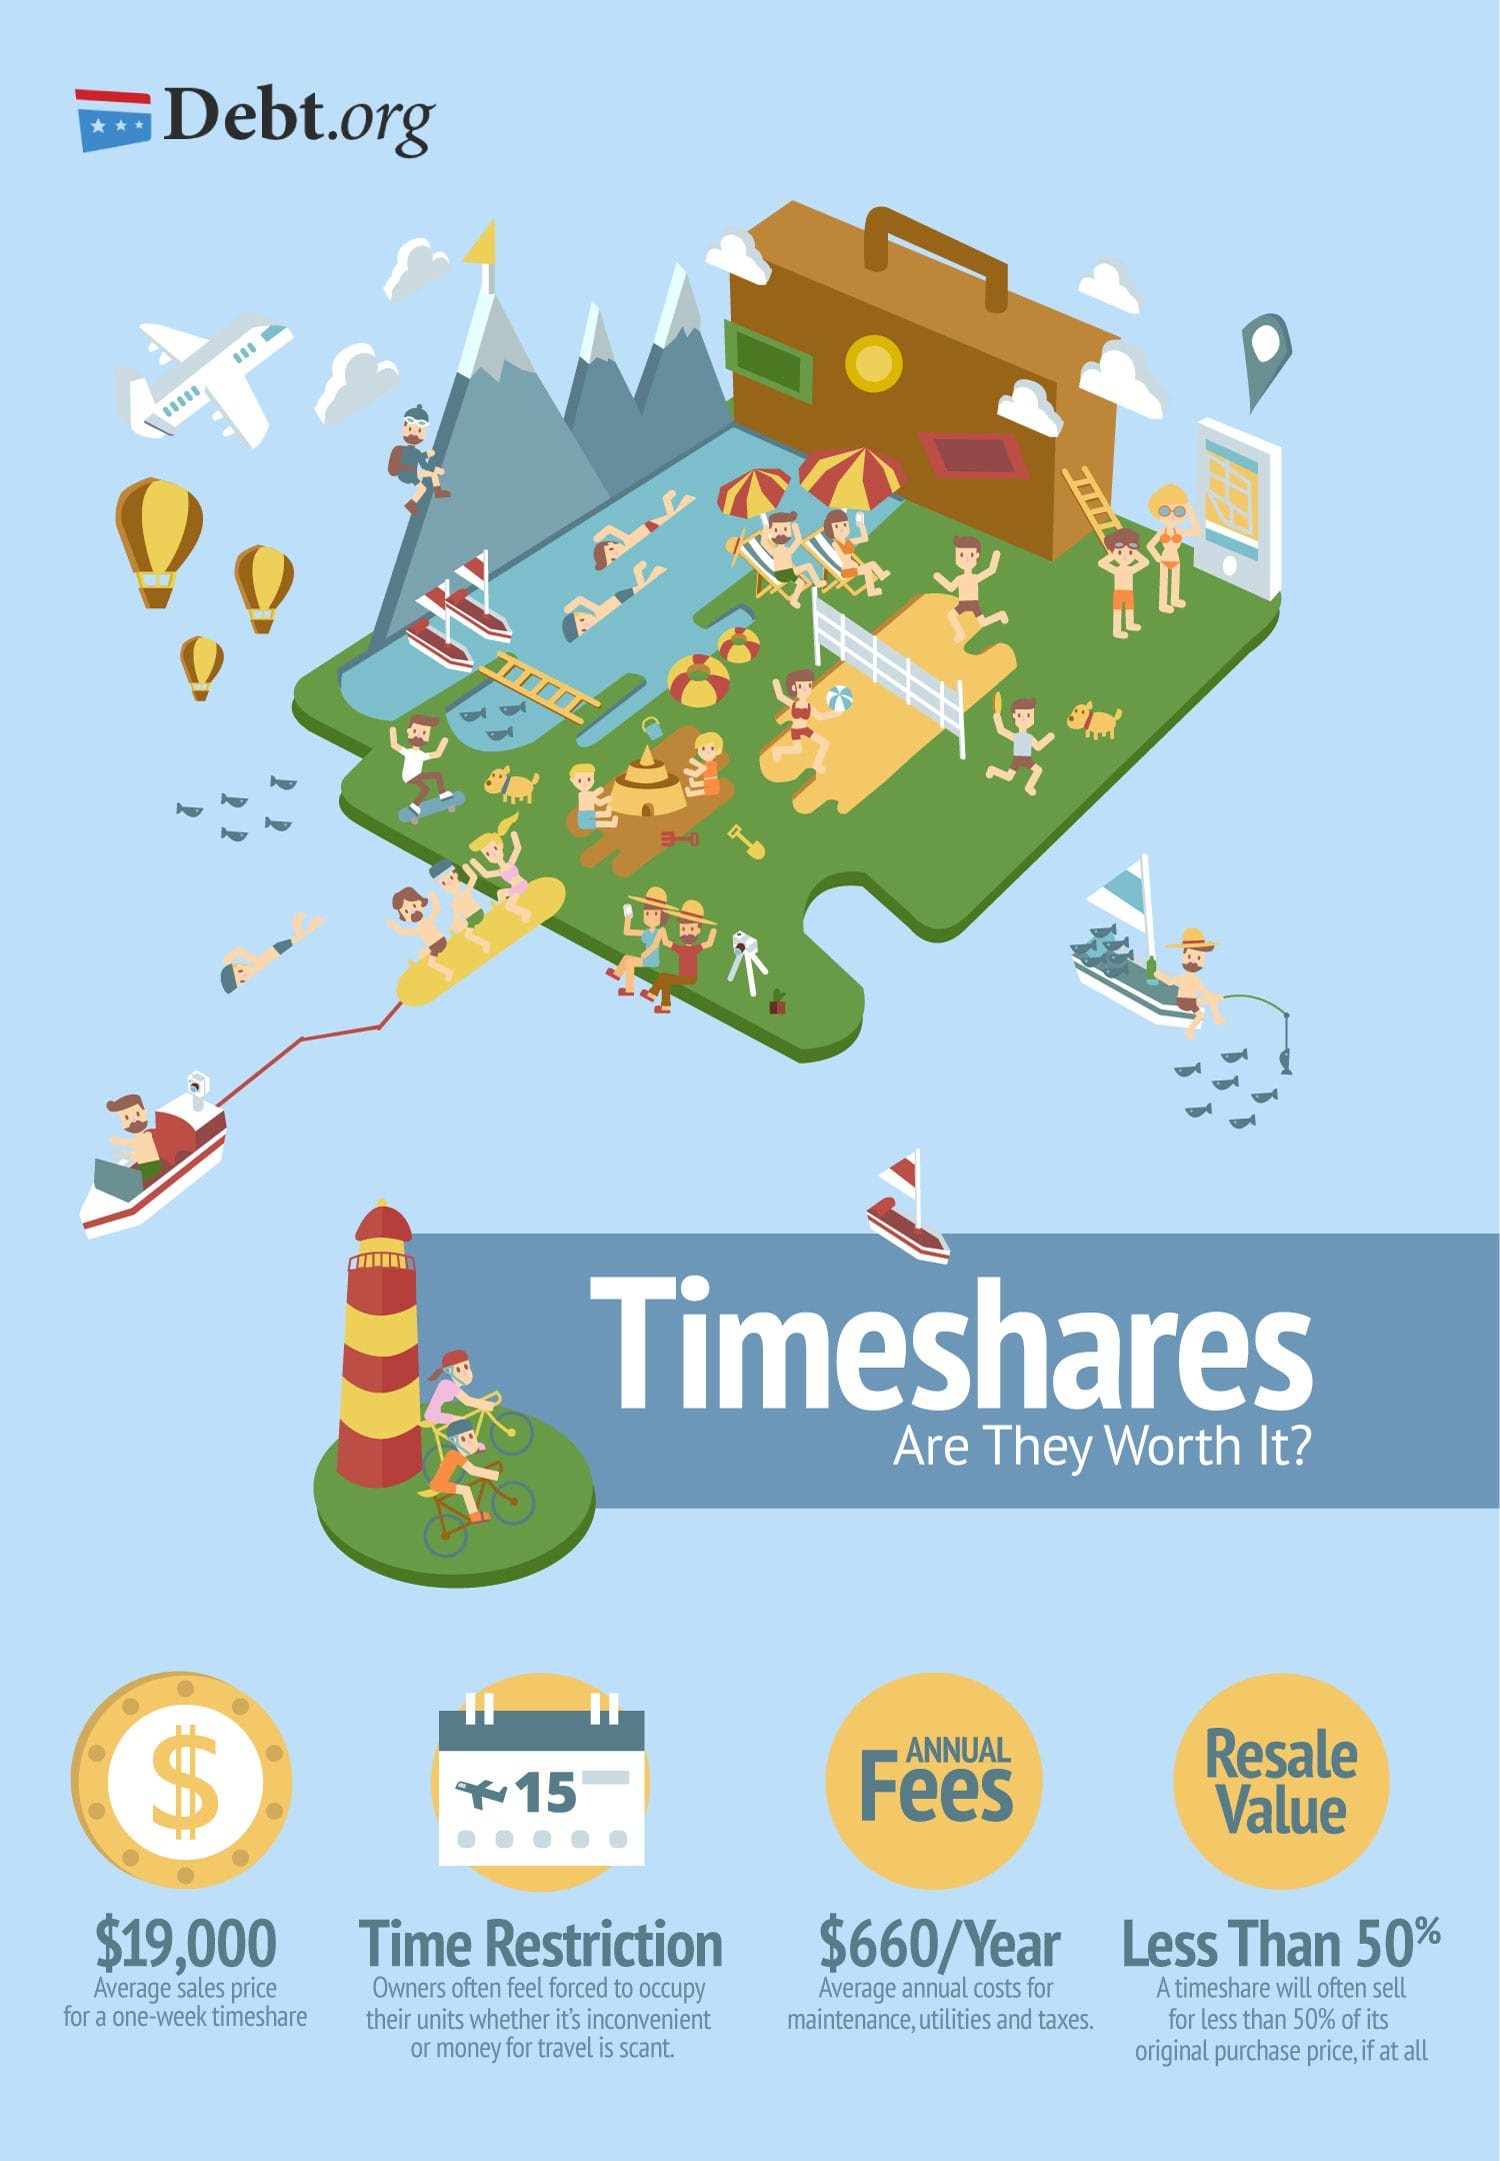 Are Timeshares a Good Investment or a Scam